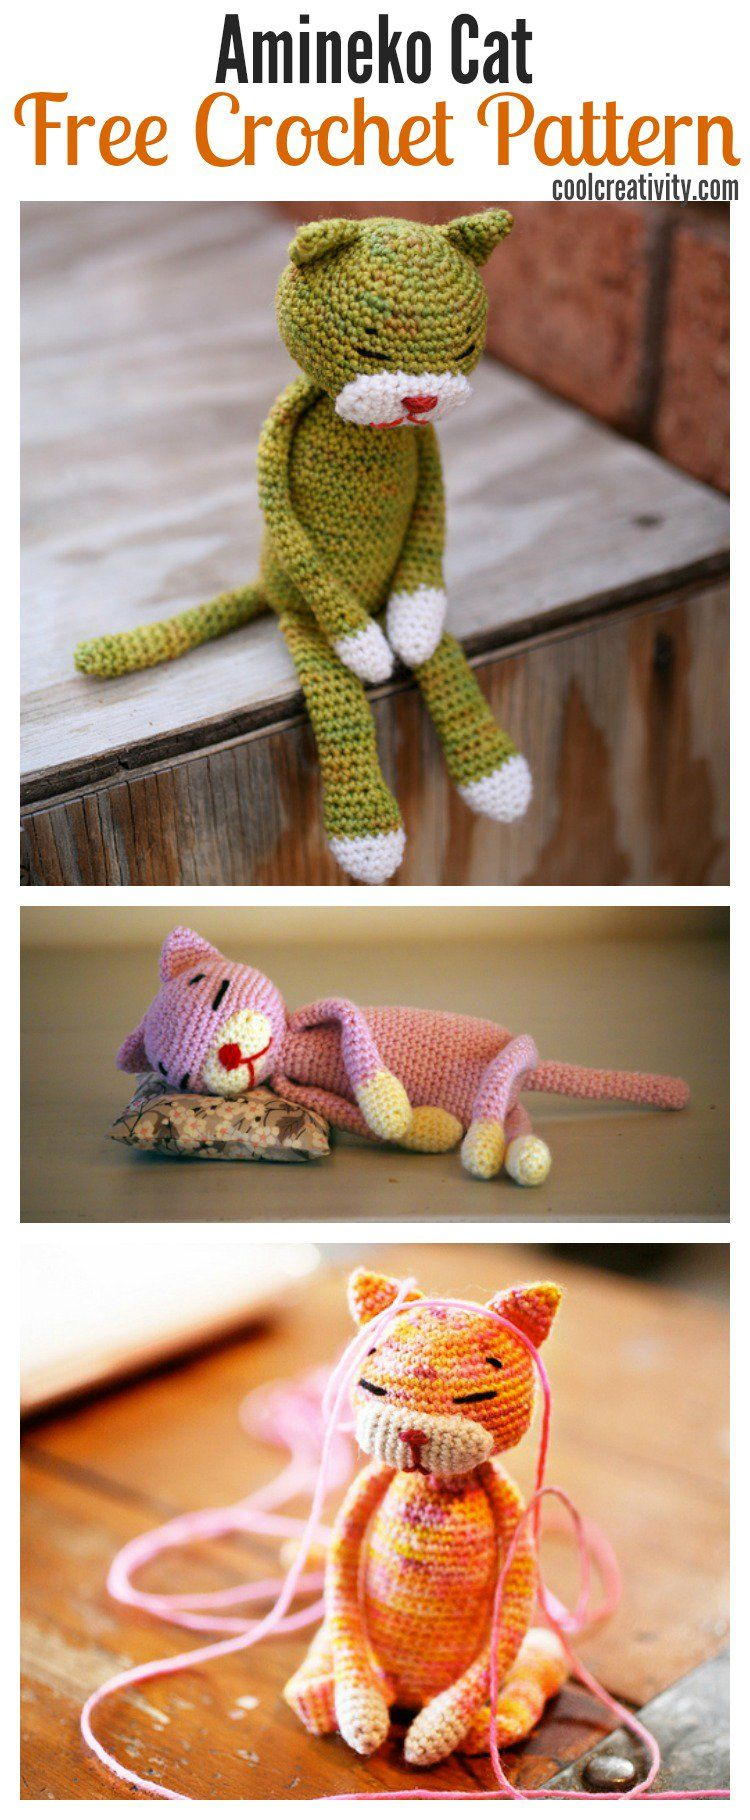 Crochet Amineko Cat with Free Pattern | Häkelmuster, kostenlose ...